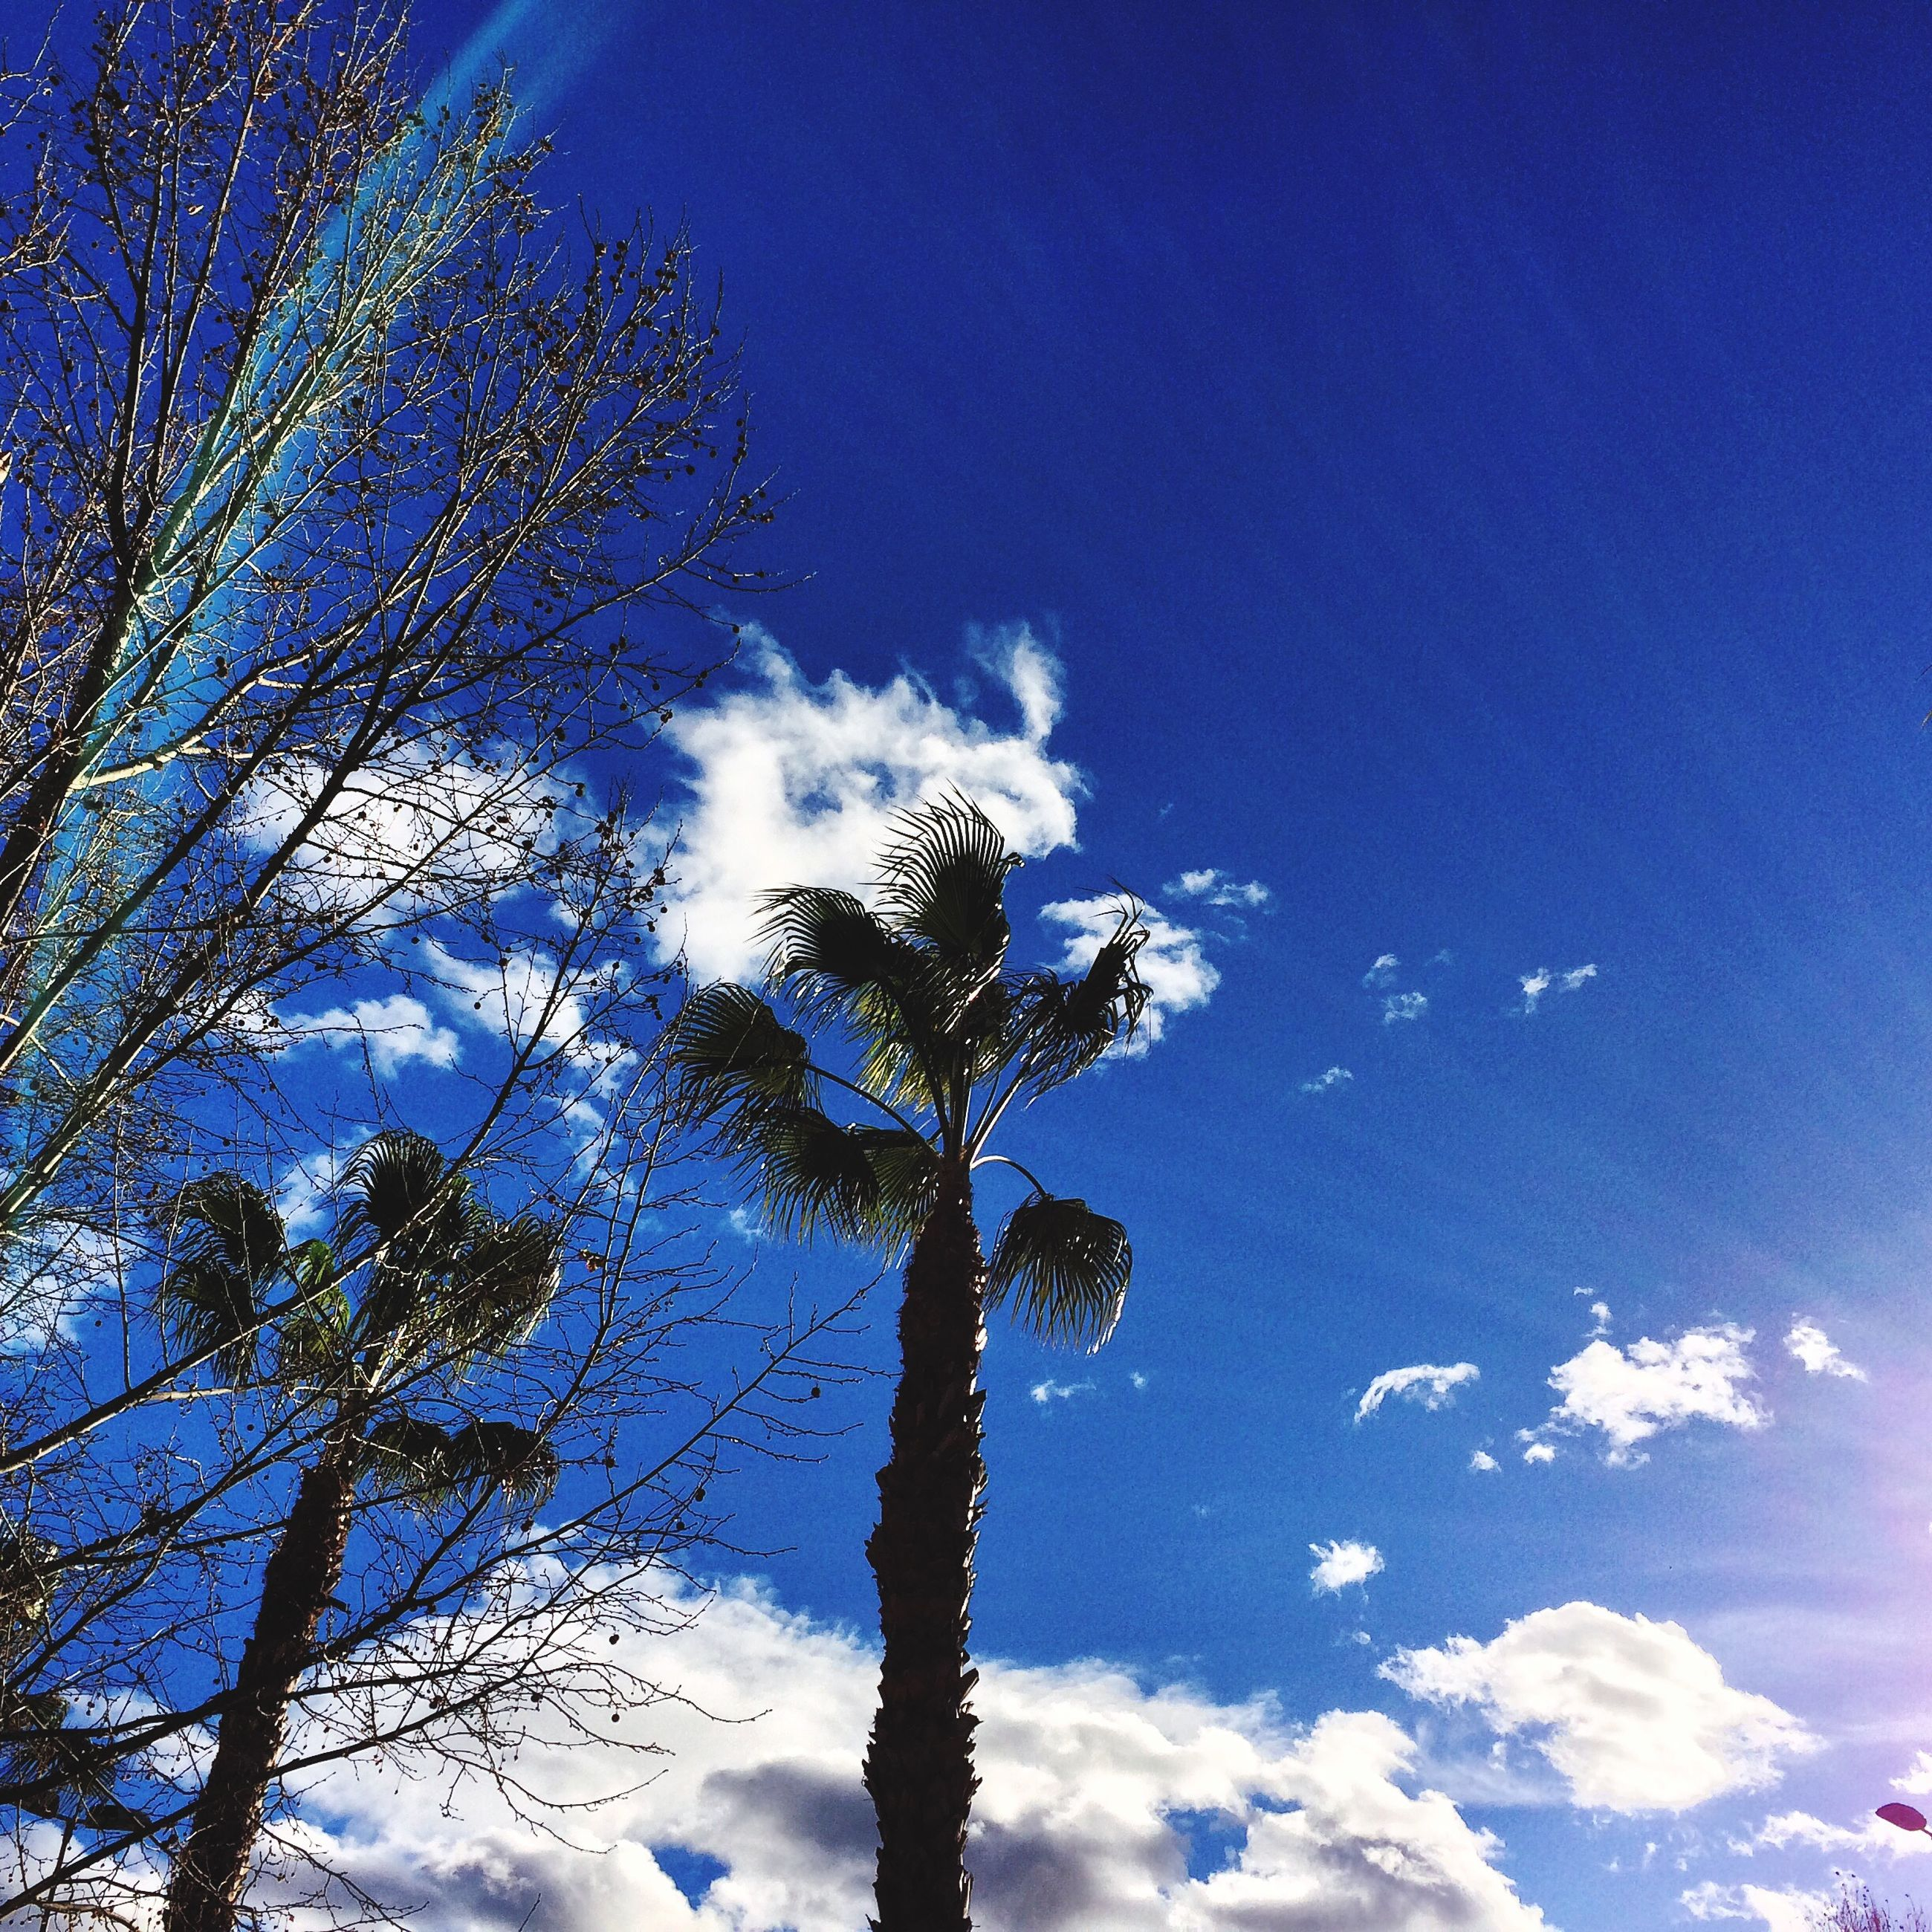 low angle view, tree, blue, sky, beauty in nature, nature, tranquility, sun, branch, sunlight, growth, sunbeam, clear sky, scenics, silhouette, lens flare, outdoors, day, no people, tranquil scene